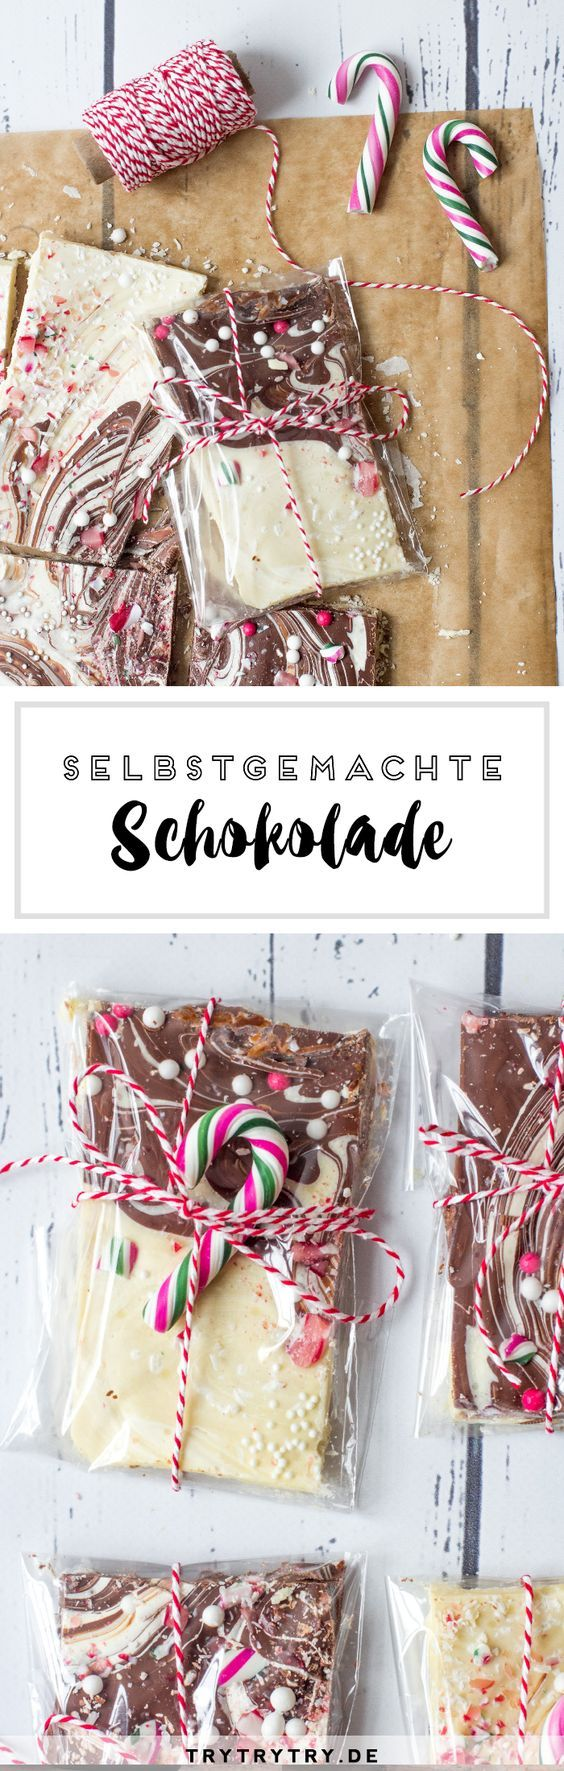 selbstgemachte schokolade zum verschenken tolles diy geschenk f r weihnachten rezepte pinterest. Black Bedroom Furniture Sets. Home Design Ideas